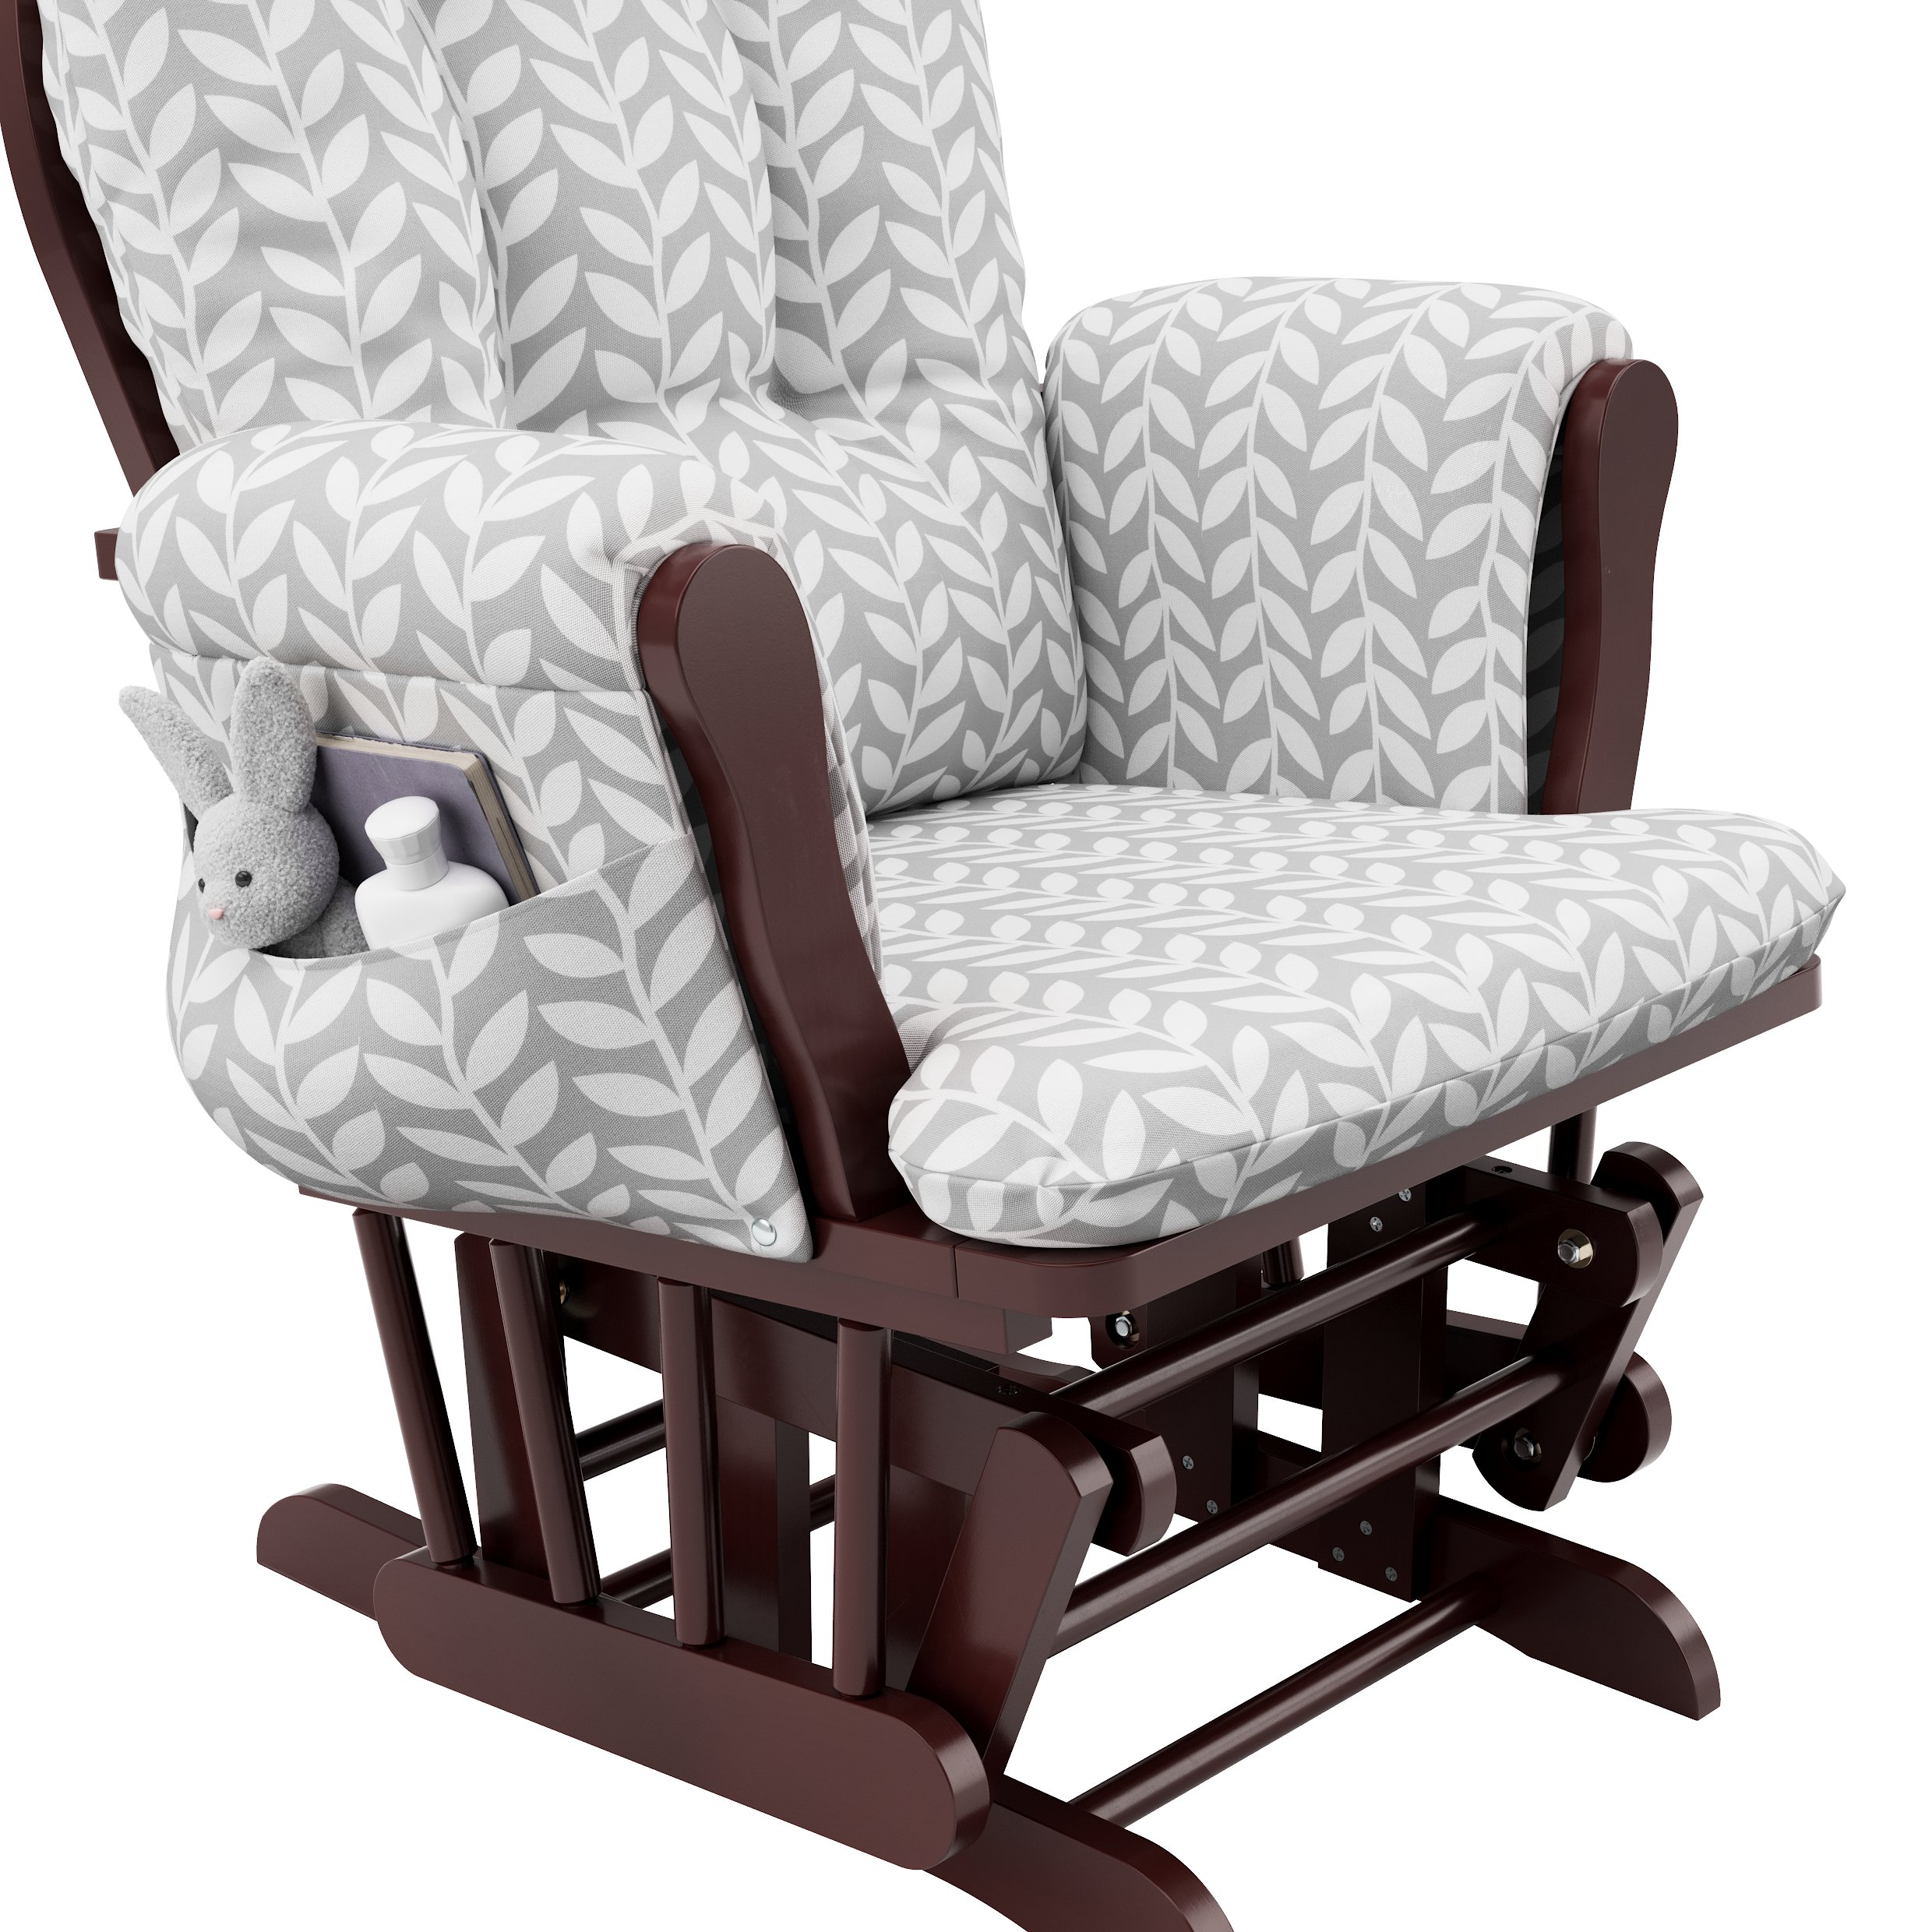 Stork Craft Hoop Glider and Ottoman, Cherry/Light Gray Vine by Stork Craft (Image #3)